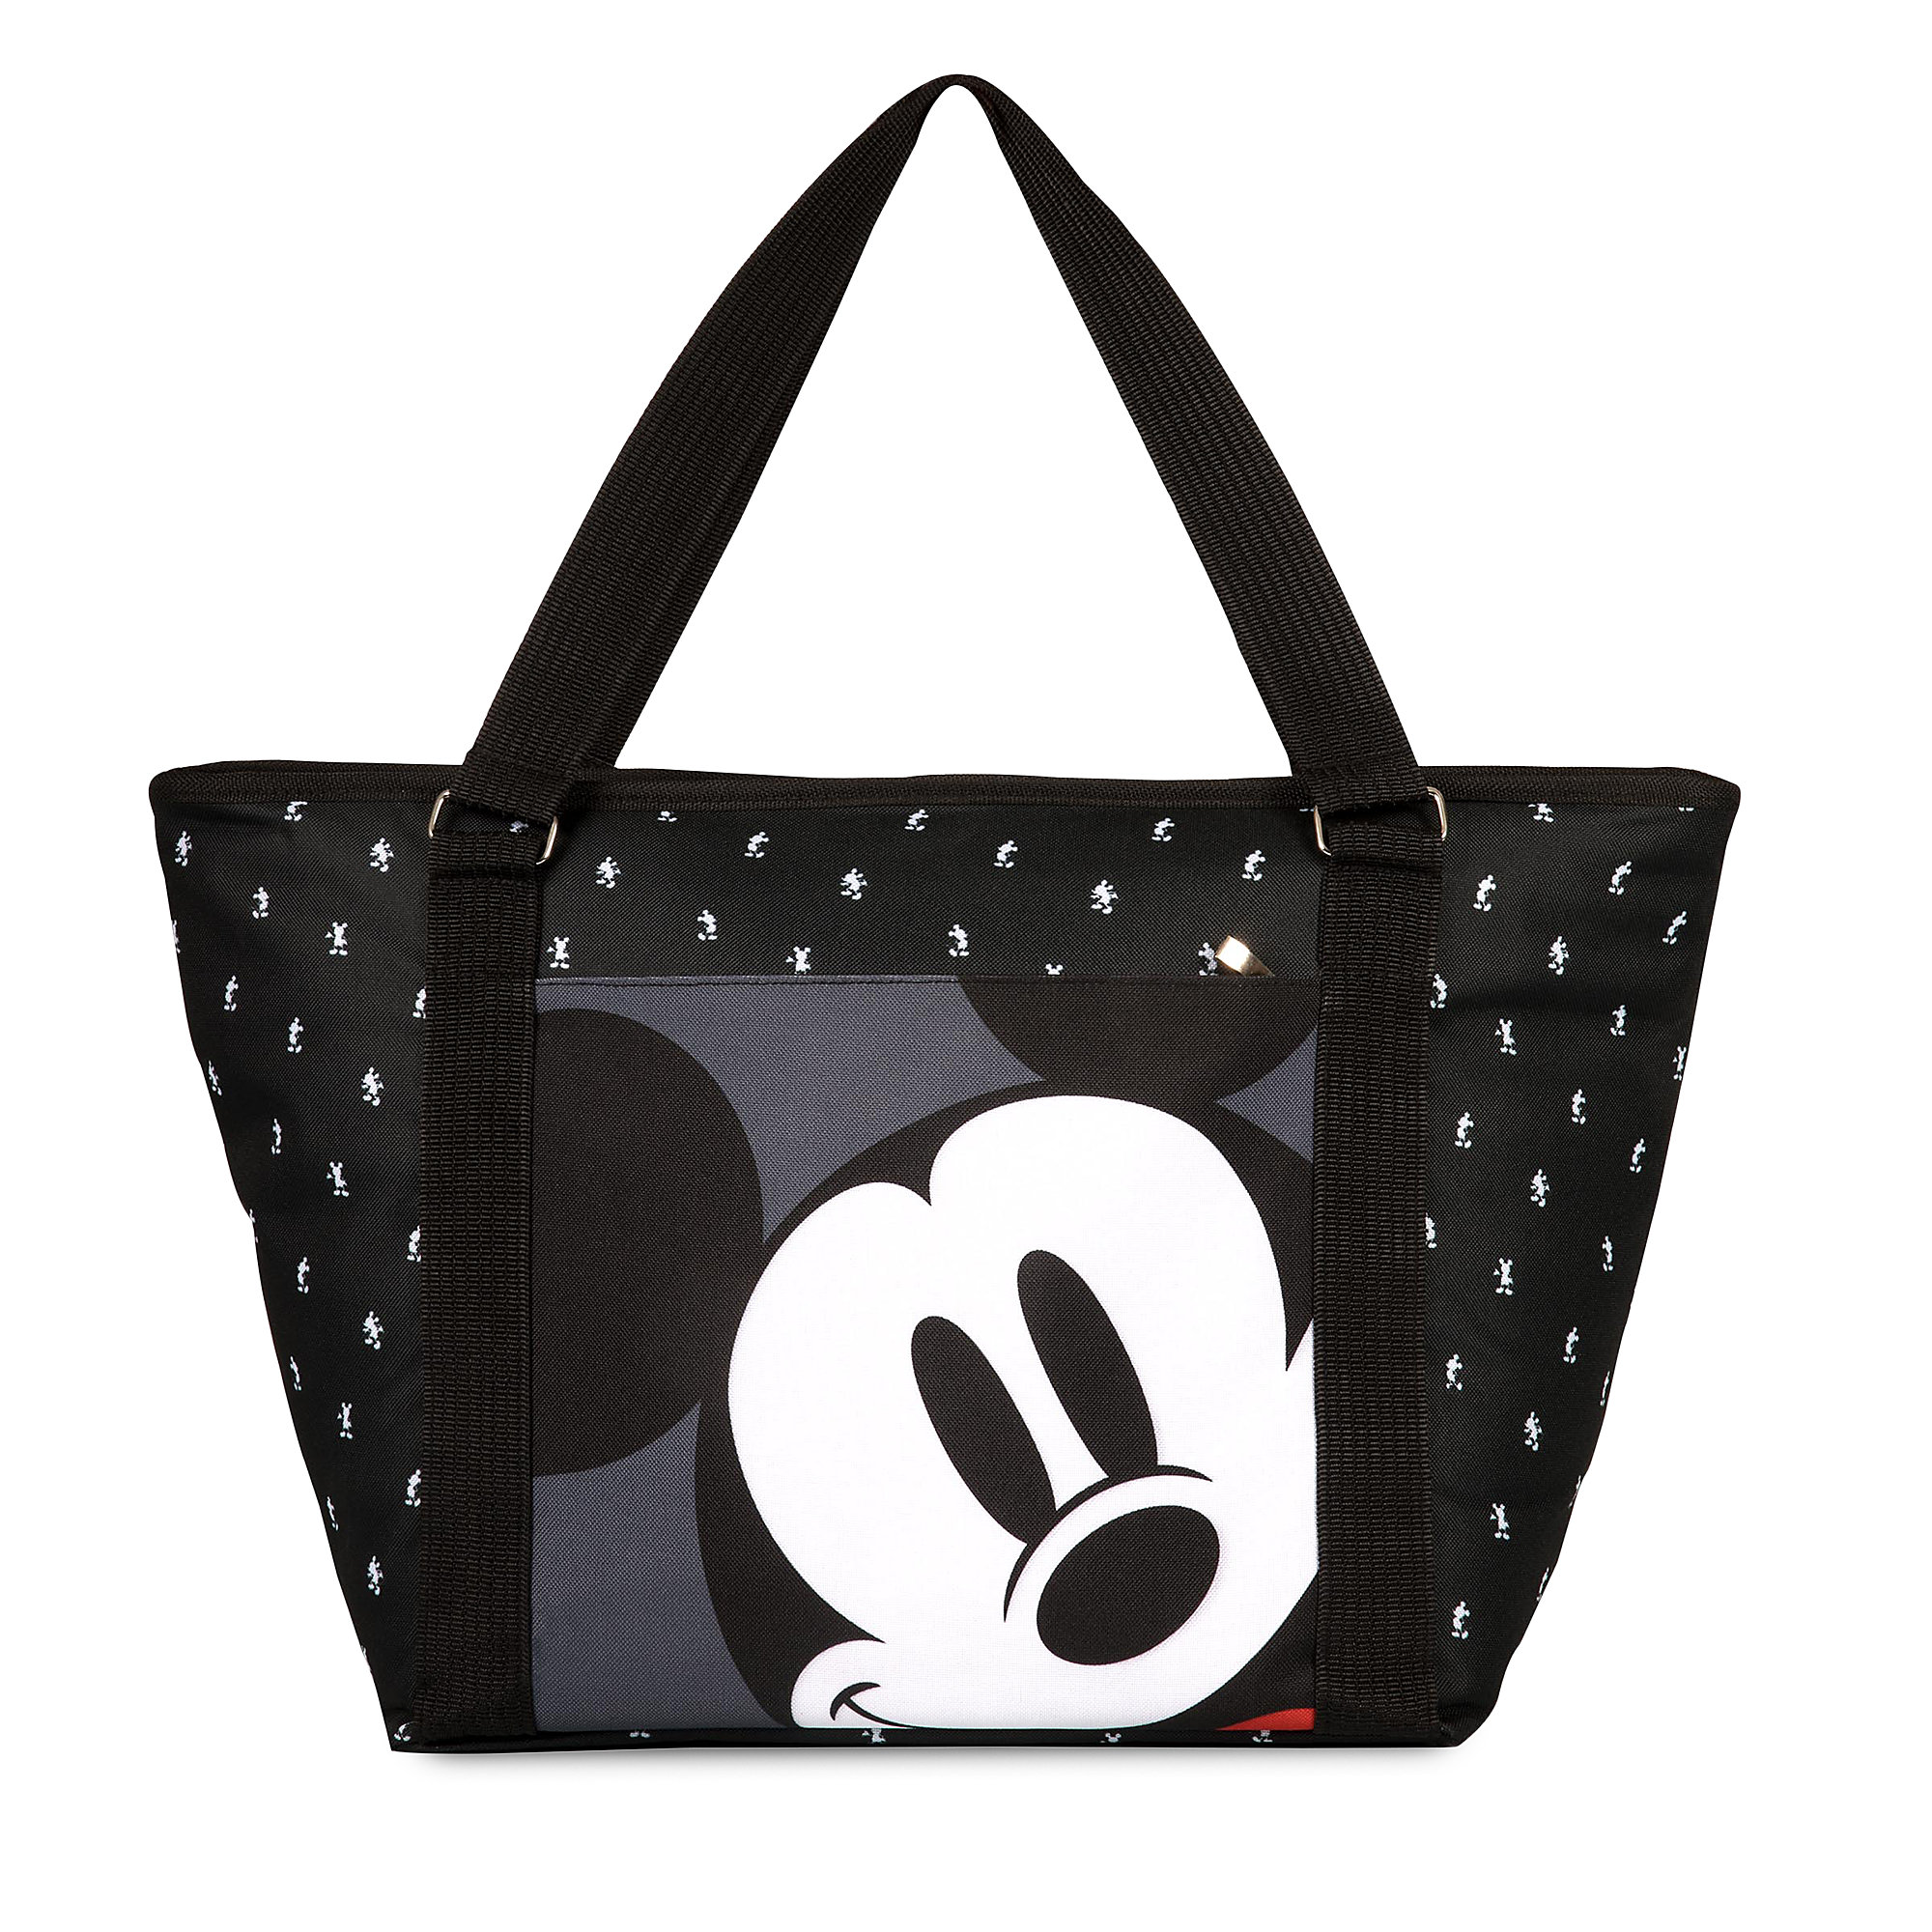 Esky Cooler Bag Mickey Mouse Cooler Tote